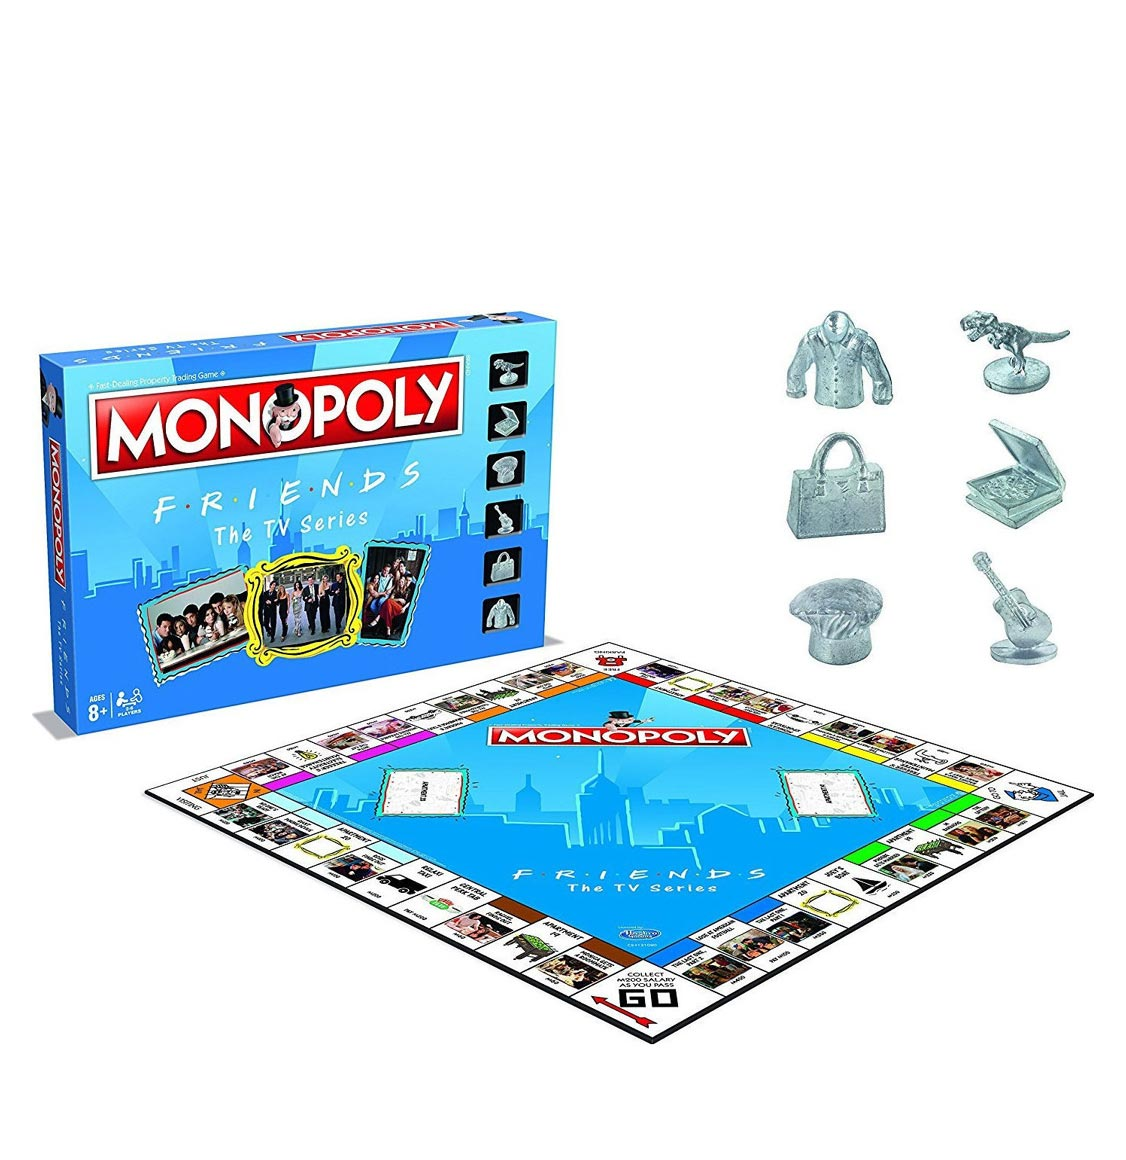 Monopoly Friends The TV Series Winning Moves English Edition